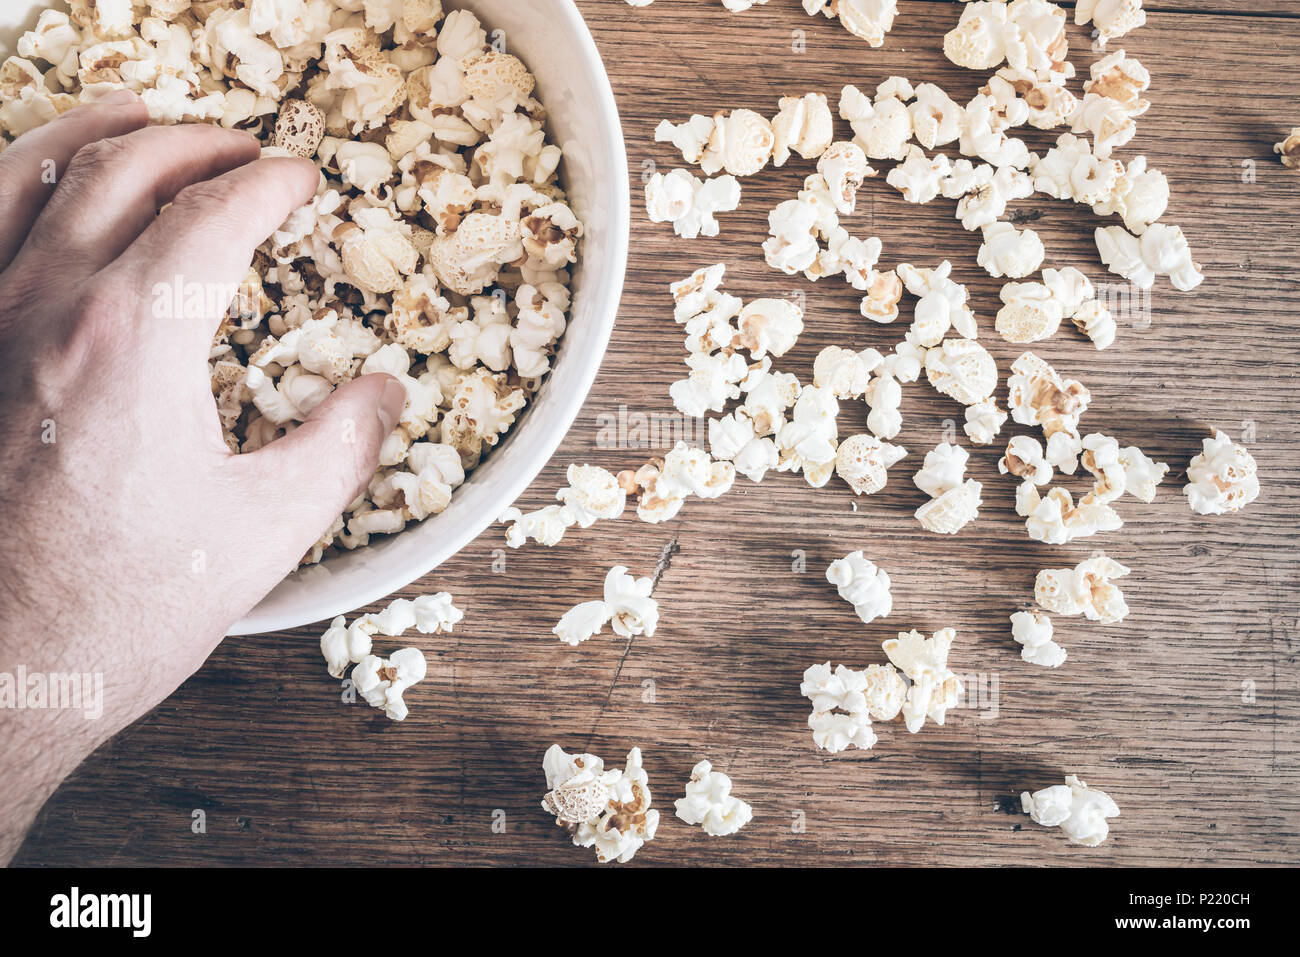 directly above shot of hand grabbing popcorn from bowl on rustic wooden table - Stock Image